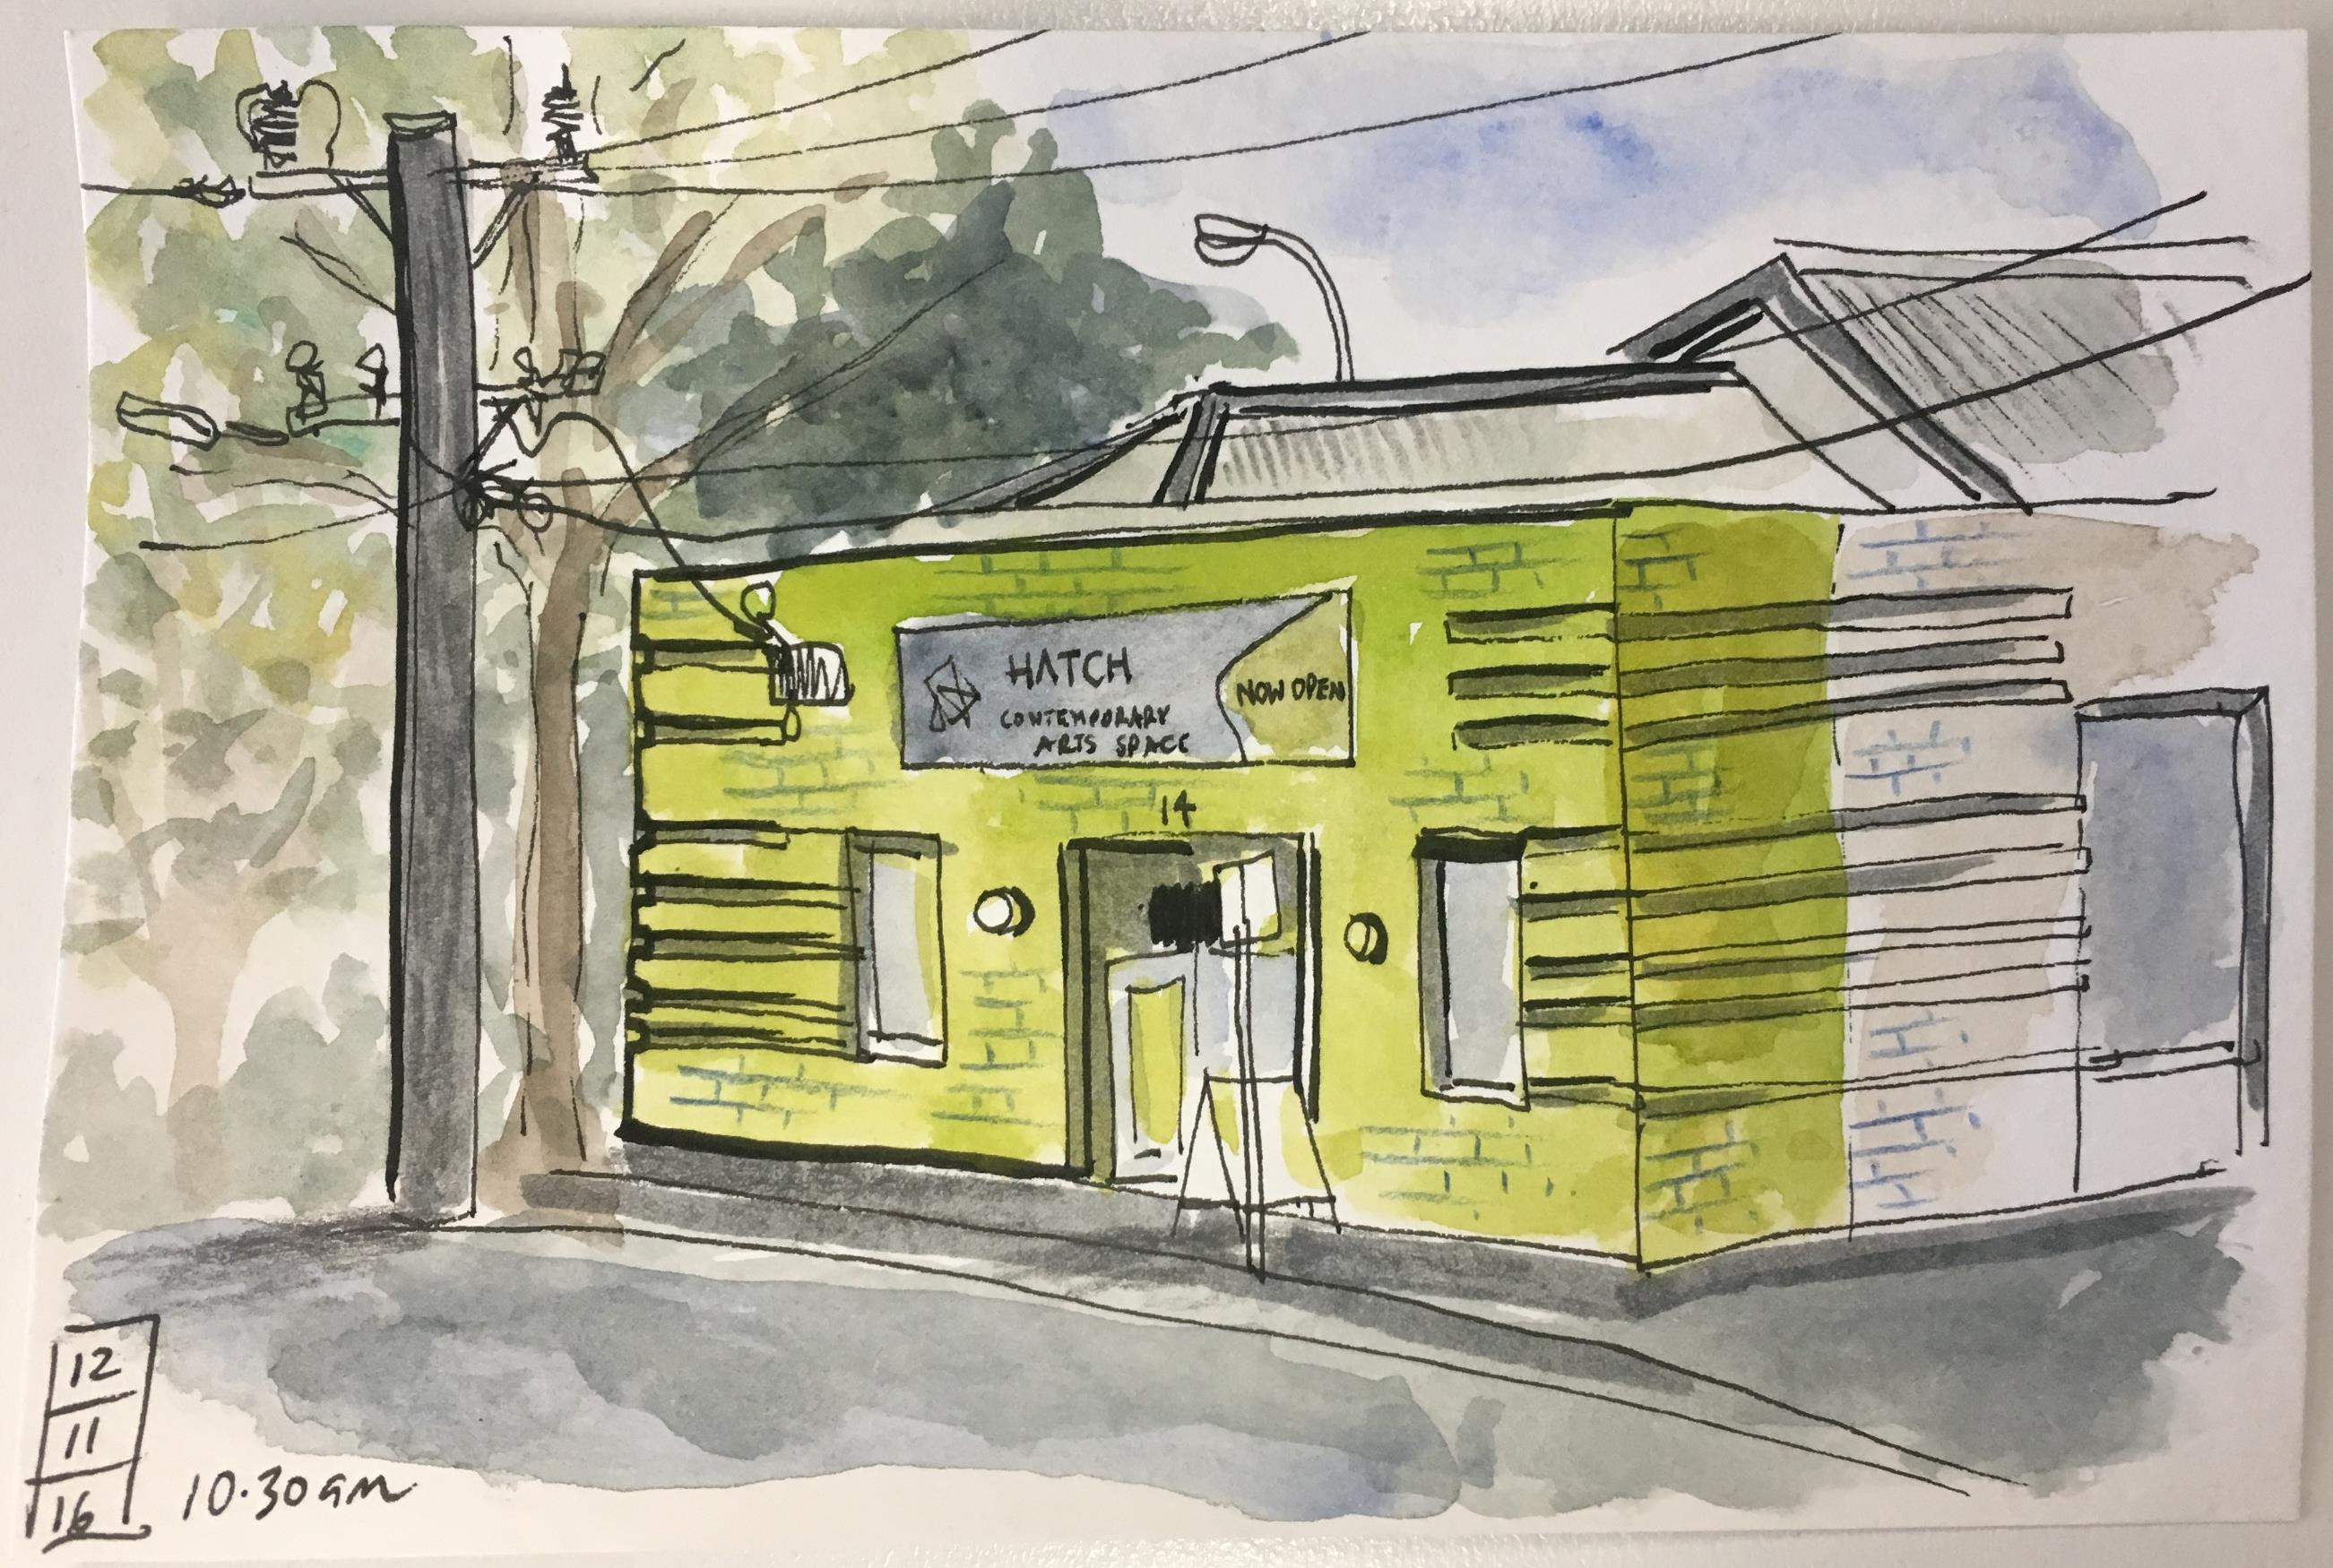 Watercolour sketch of the Hatch Contemporary Art Space street front by local artist Jodi Wiley, 12 November 2016